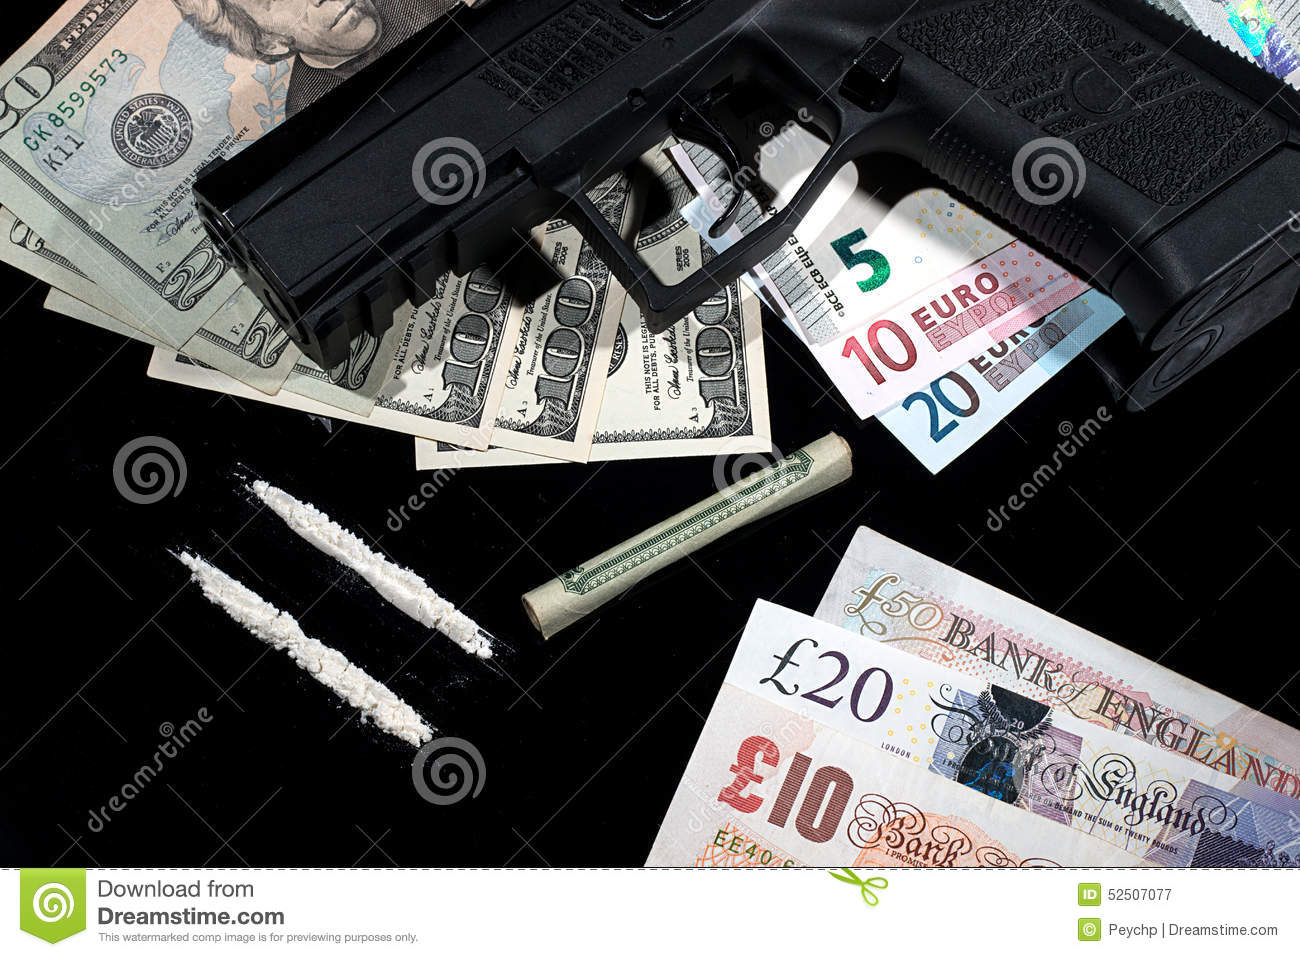 Pictures of money and drugs - academicchess.x.fc2.com